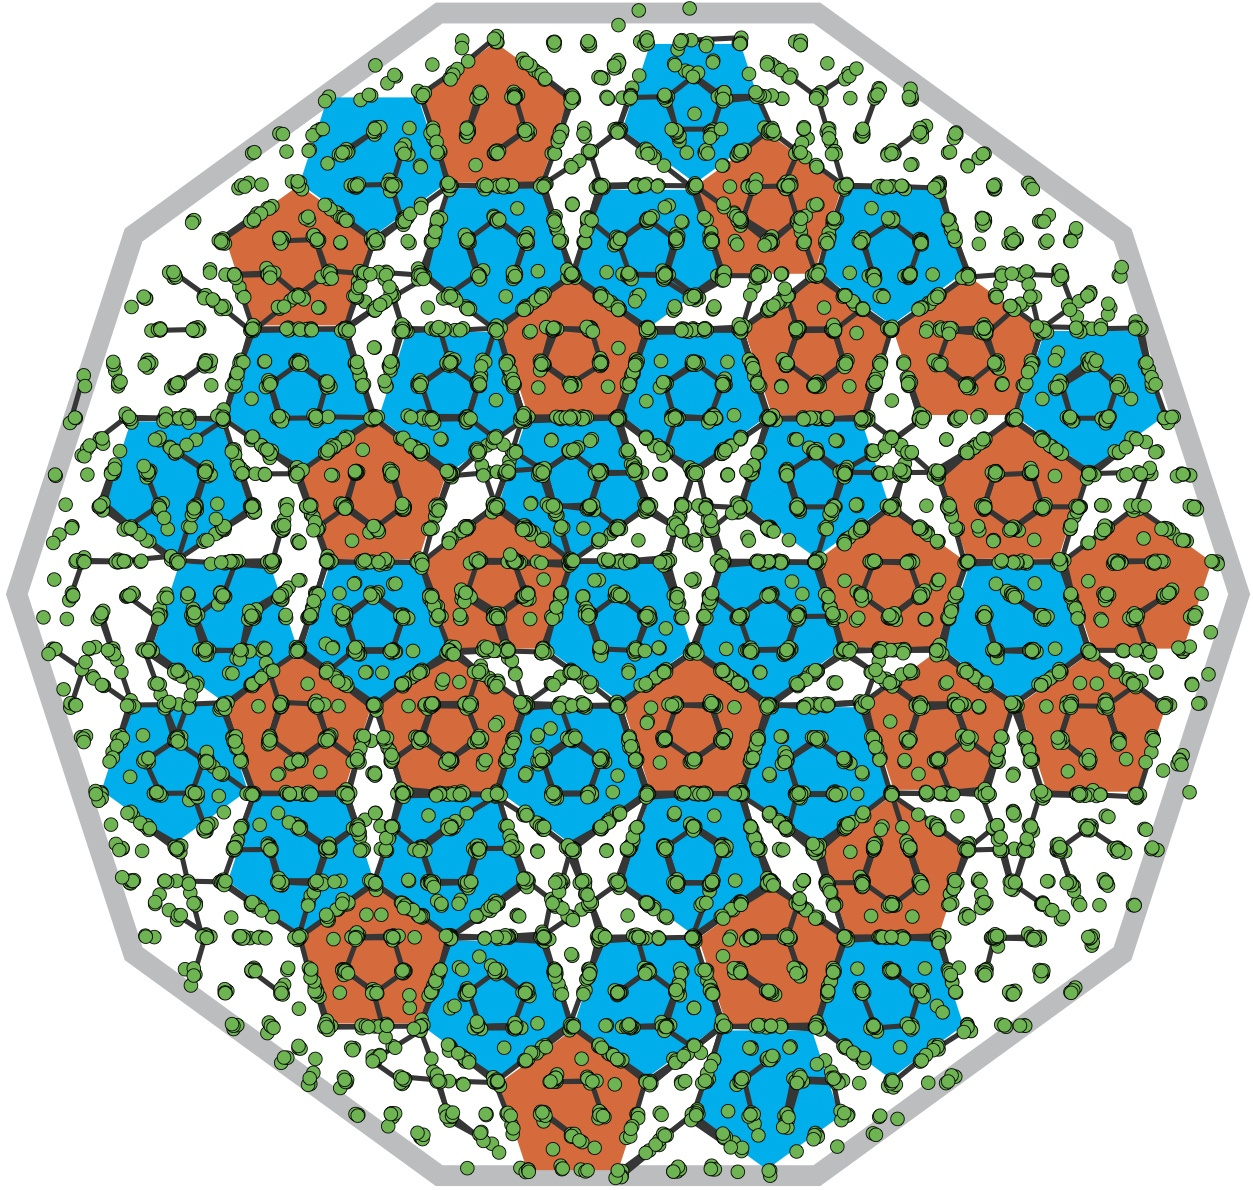 A Cross Section Of The Icosahedral Quasicrystal Simulated By University MIchigan Researchers While